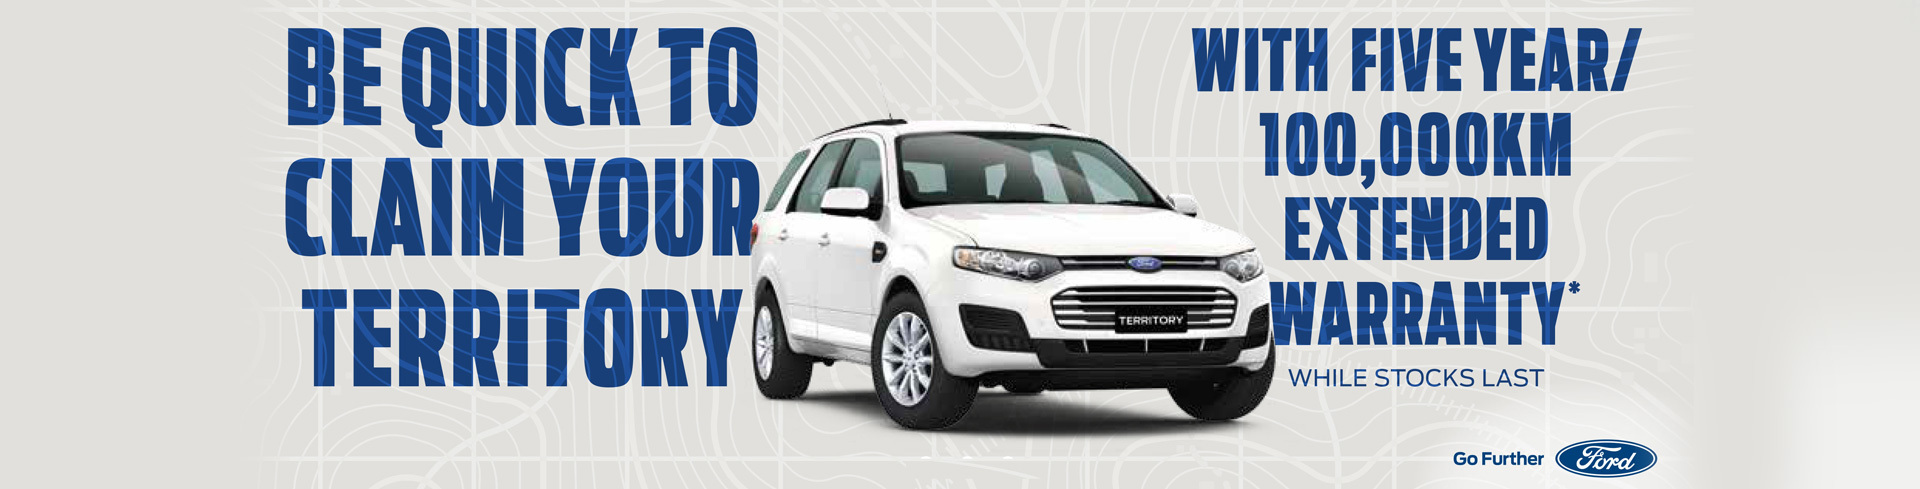 Ford - National Offer - With Five Year/100,000km Extended Warranty